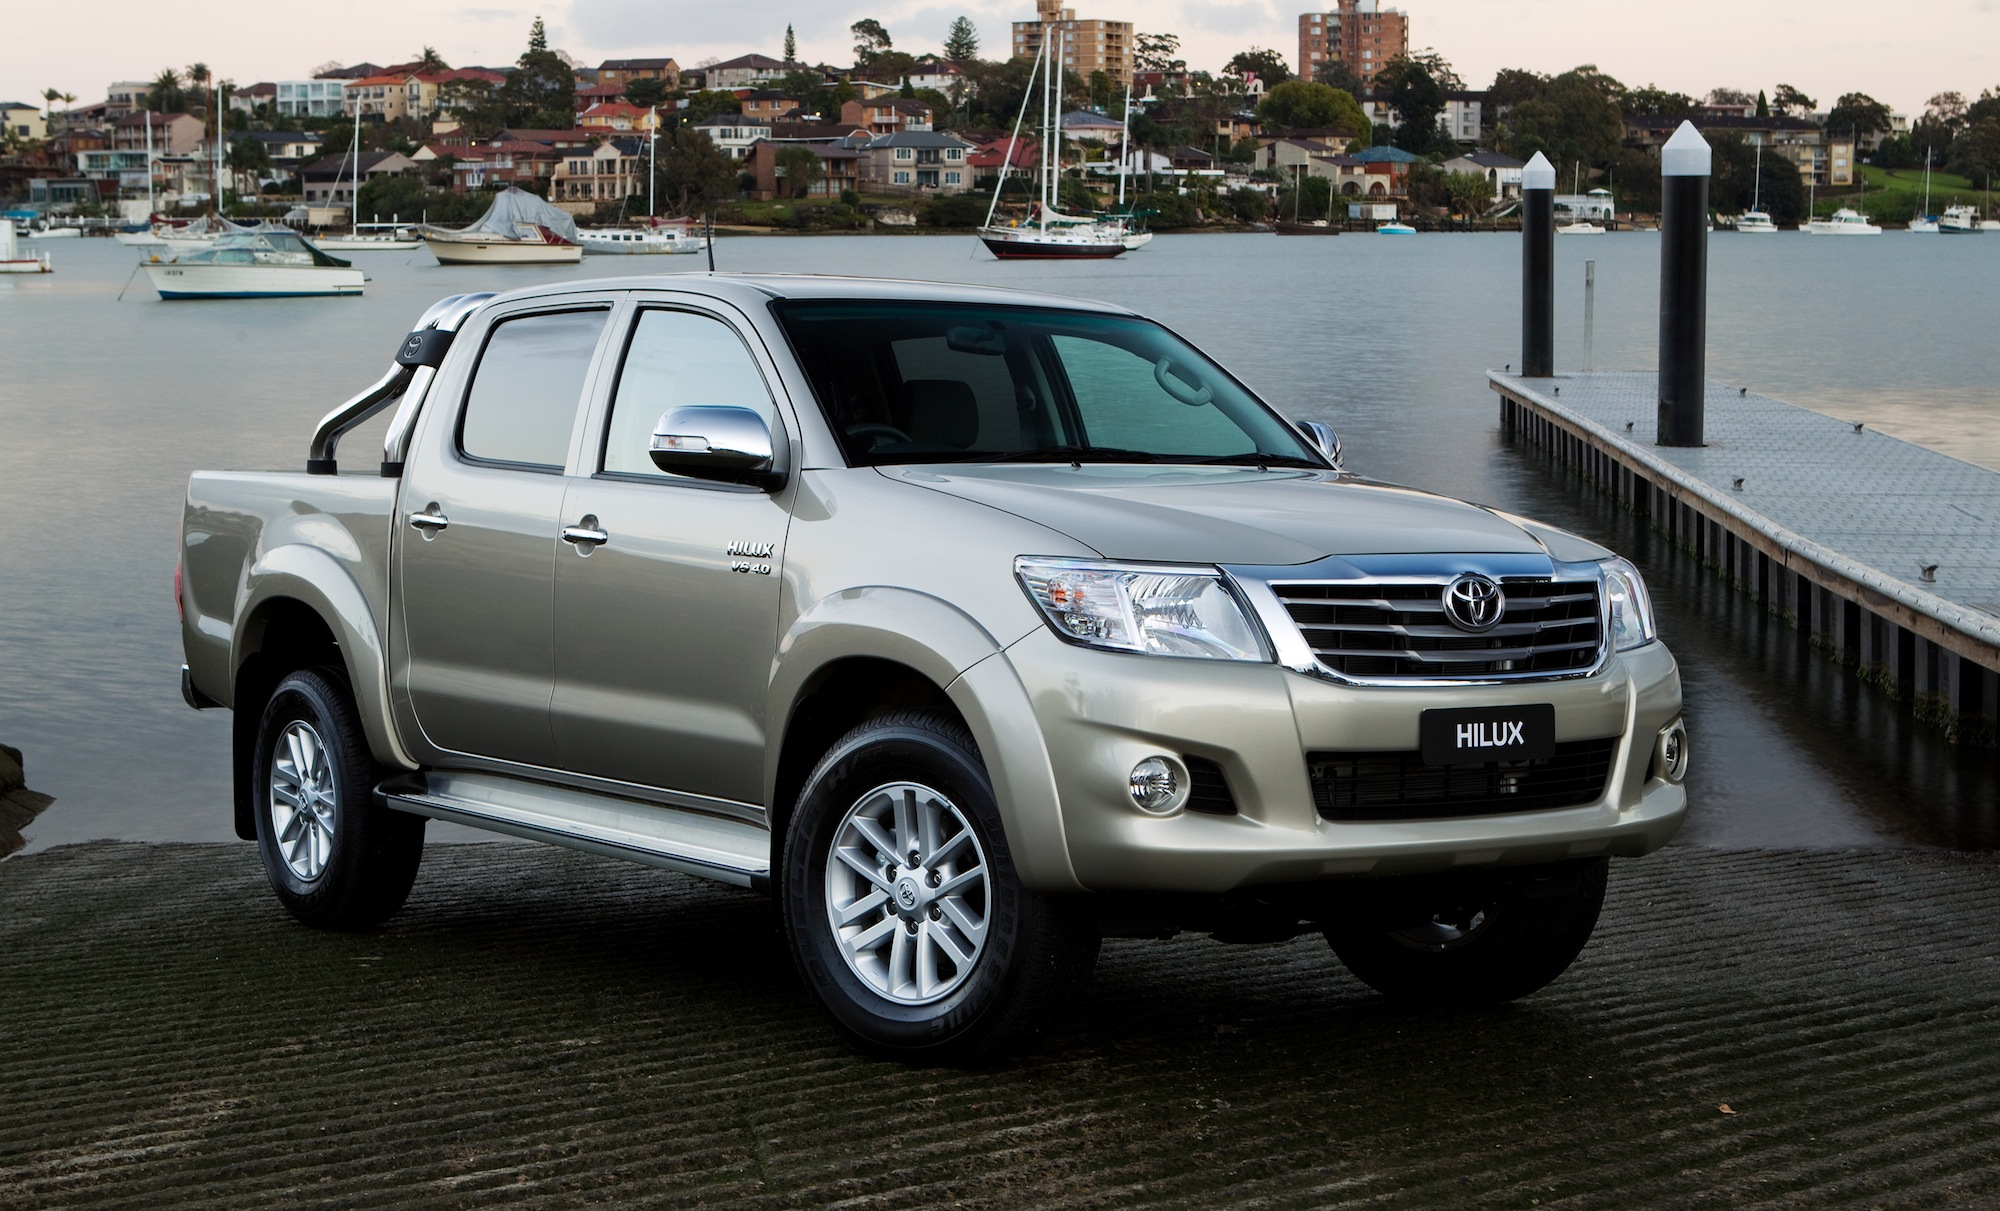 2014 toyota hilux new auto safety upgrades price rises for double cab ute photos 1 of 2. Black Bedroom Furniture Sets. Home Design Ideas